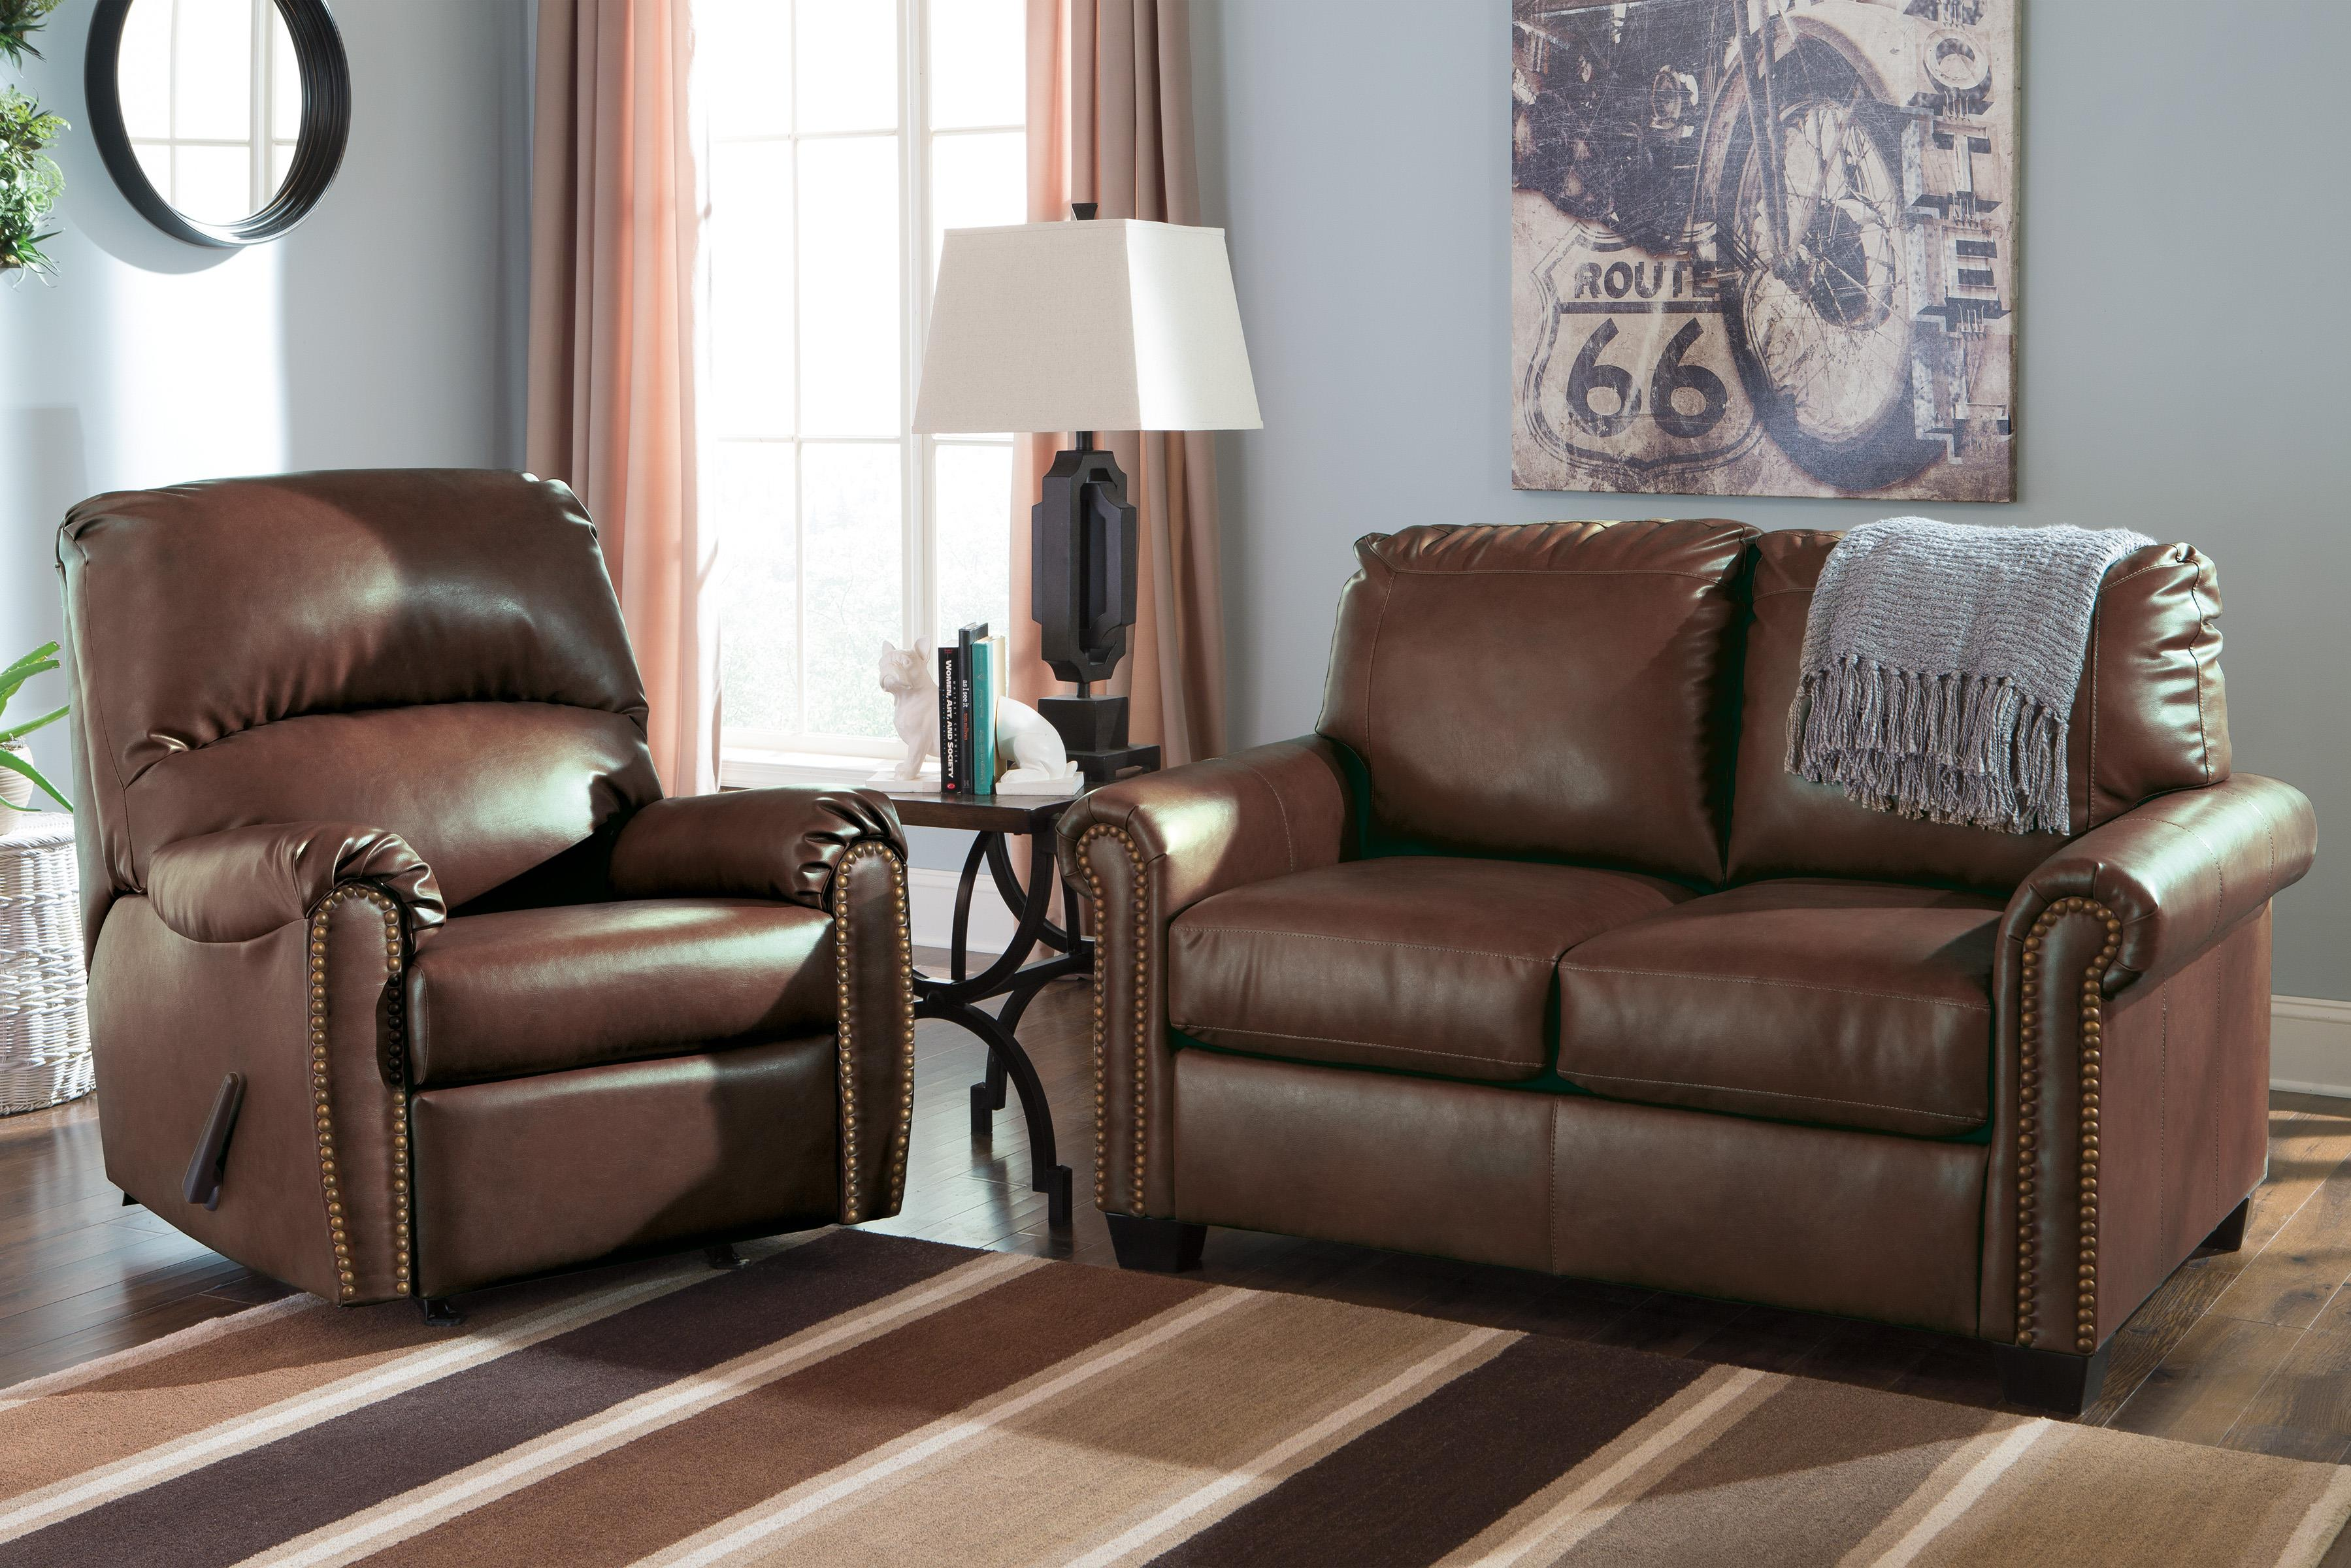 Signature Design by Ashley Lottie DuraBlend® Transitional Bonded Leather Match Rocker Recliner with Nailhead Trim - Wayside Furniture - Three Way Recliner & Signature Design by Ashley Lottie DuraBlend® Transitional Bonded ... islam-shia.org